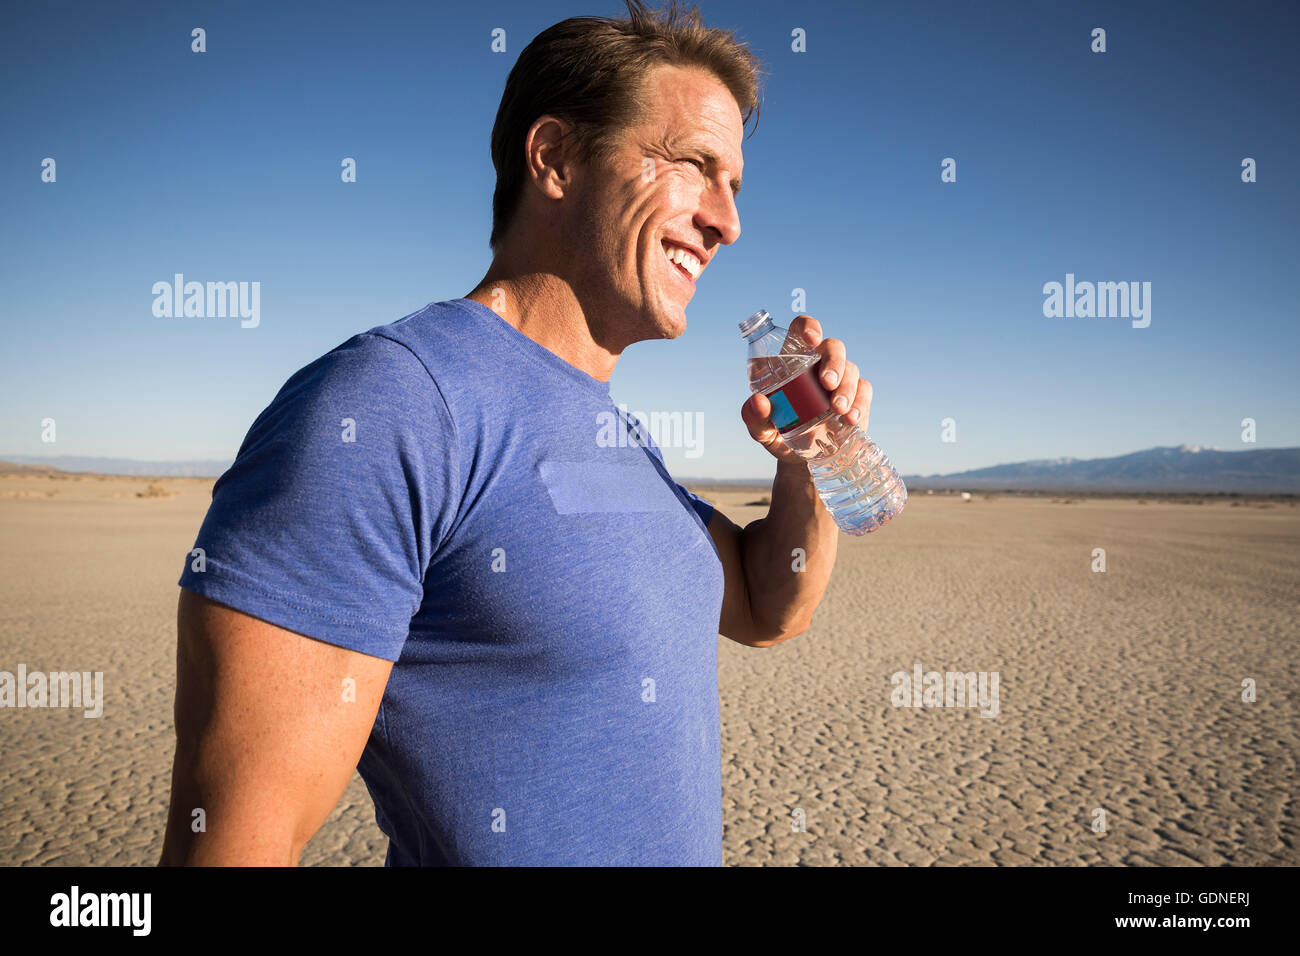 Man training, with bottled water on dry lake bed, El Mirage, California, USA - Stock Image